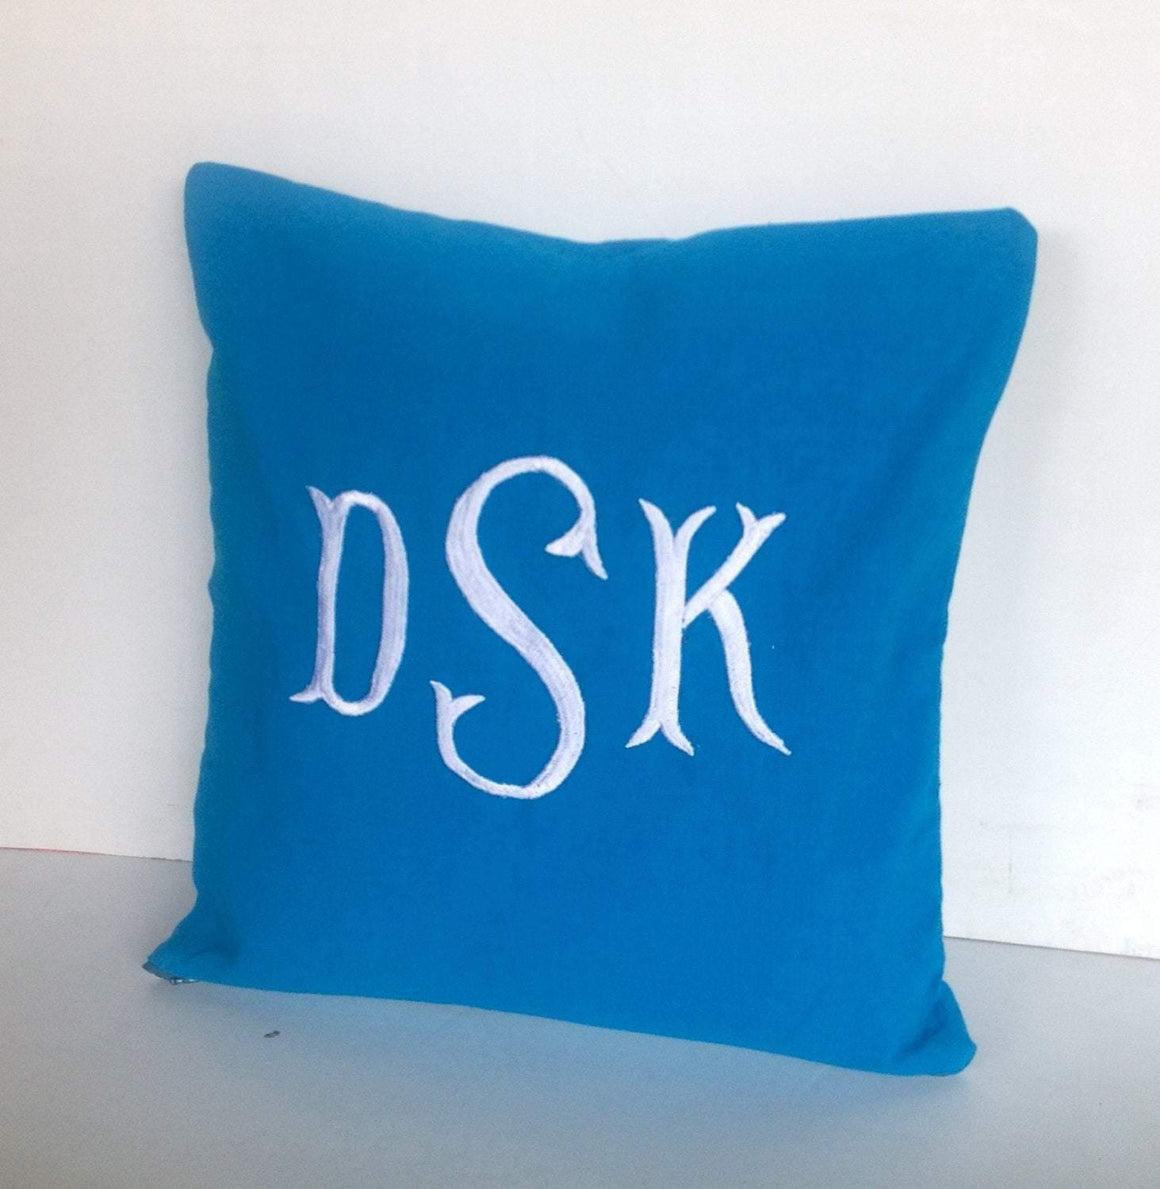 Monogram Pillow Cover Turquoise Blue Pillow Cover Housewarming Gift Decorative Monogram Pillows Dorm Decor, Hostess Gifts, - Snazzy Living